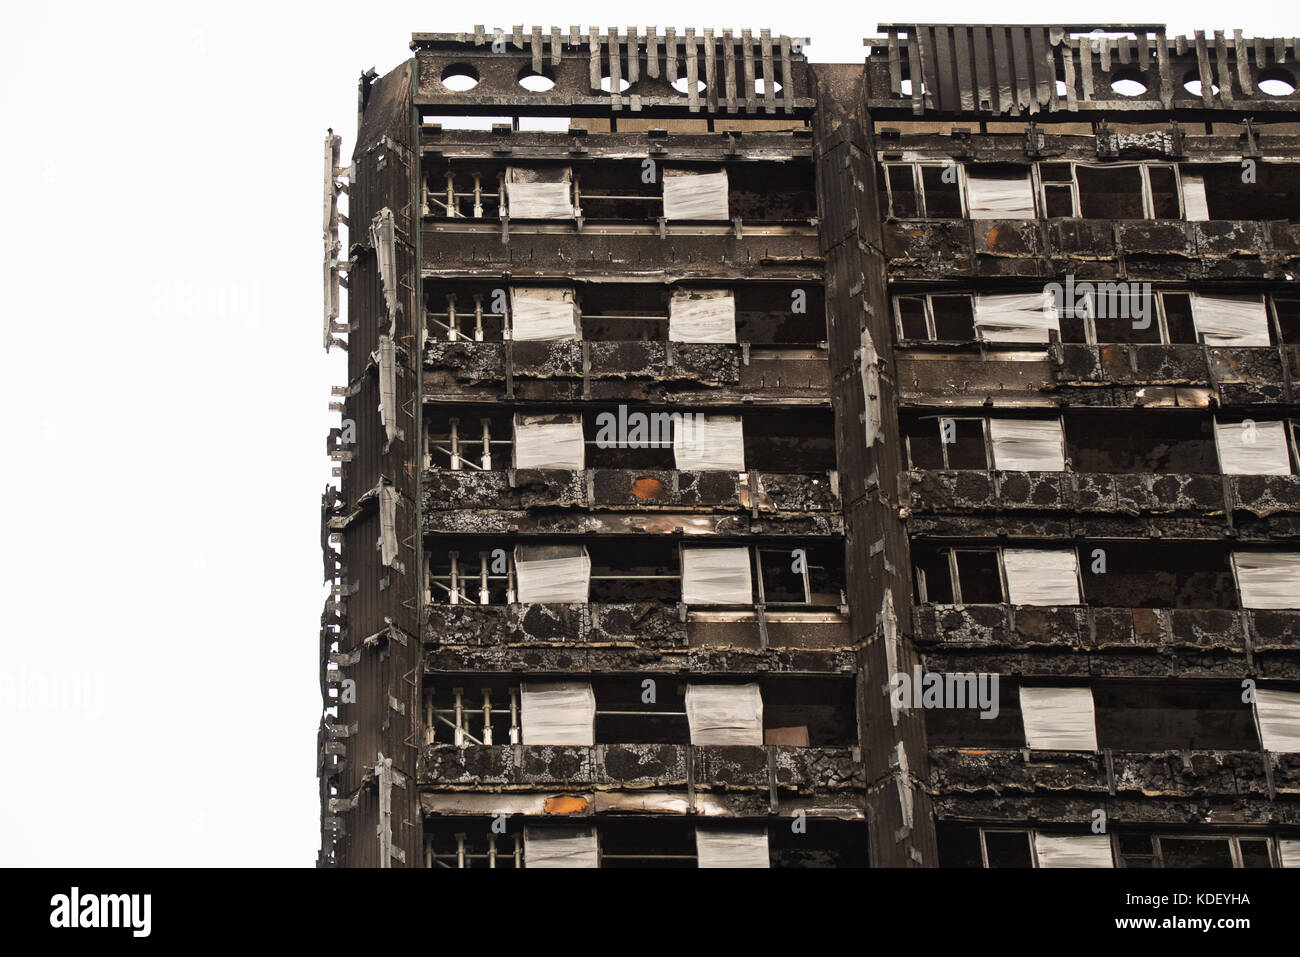 Grenfell Tower Block of Flats Latimer Road London 6th October 2017 3 months after the fire - Stock Image